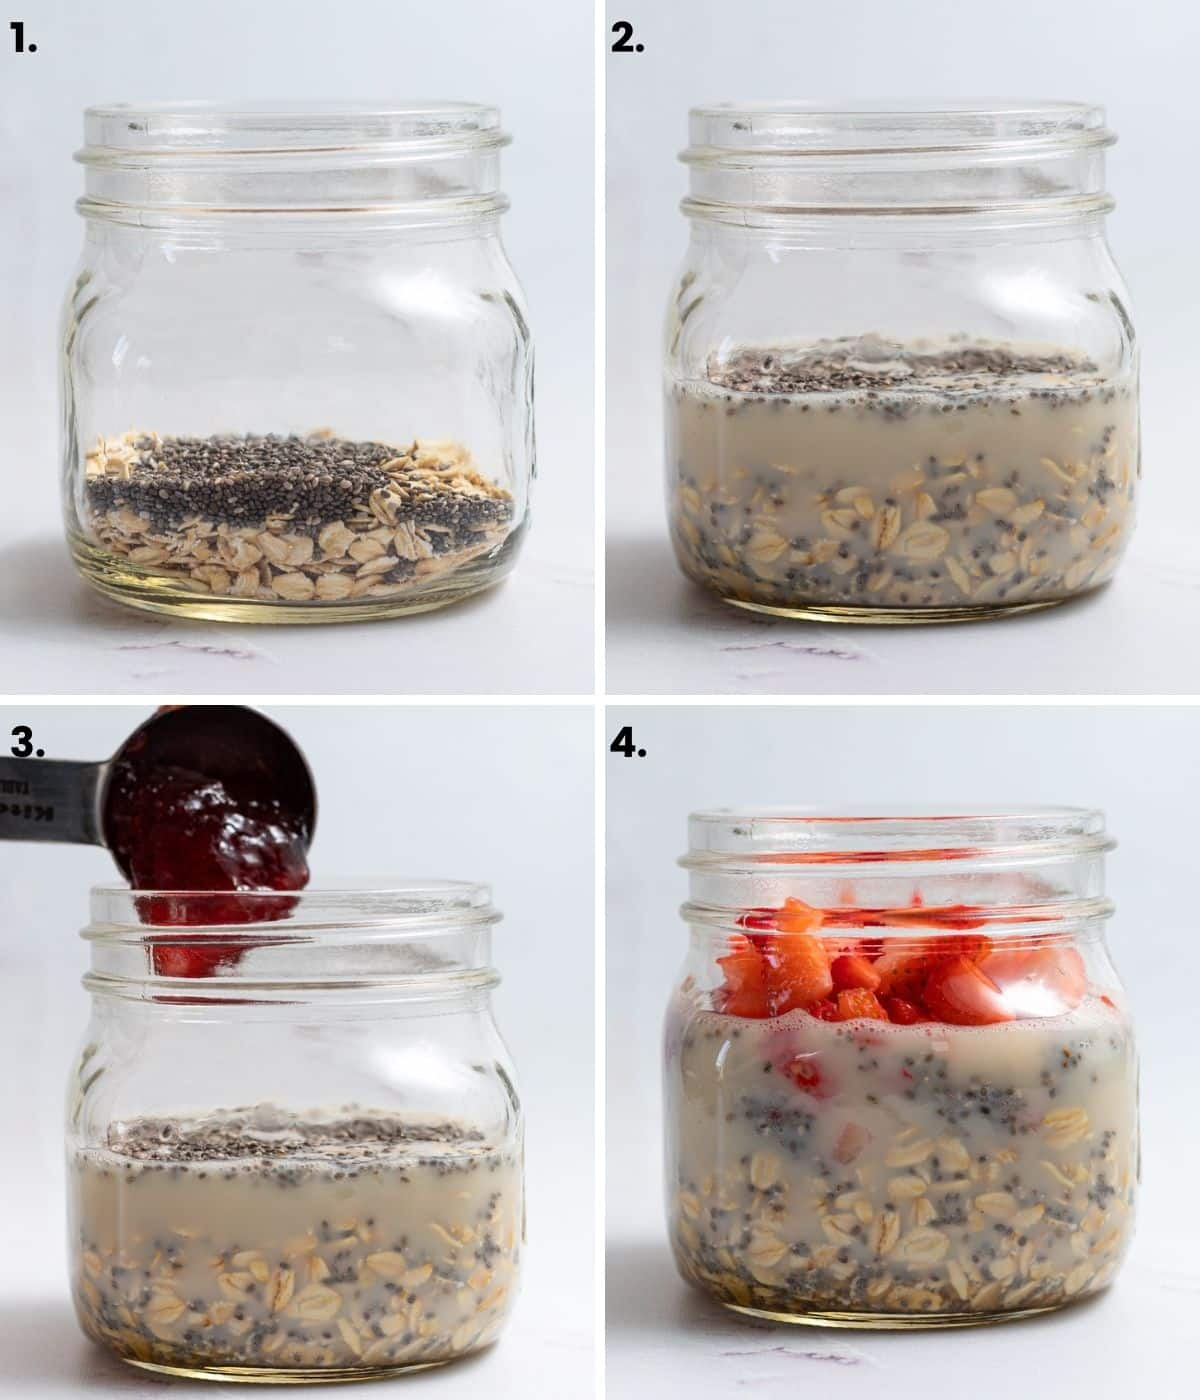 how to make strawberry overnight oats in pictures (as per written instructions)